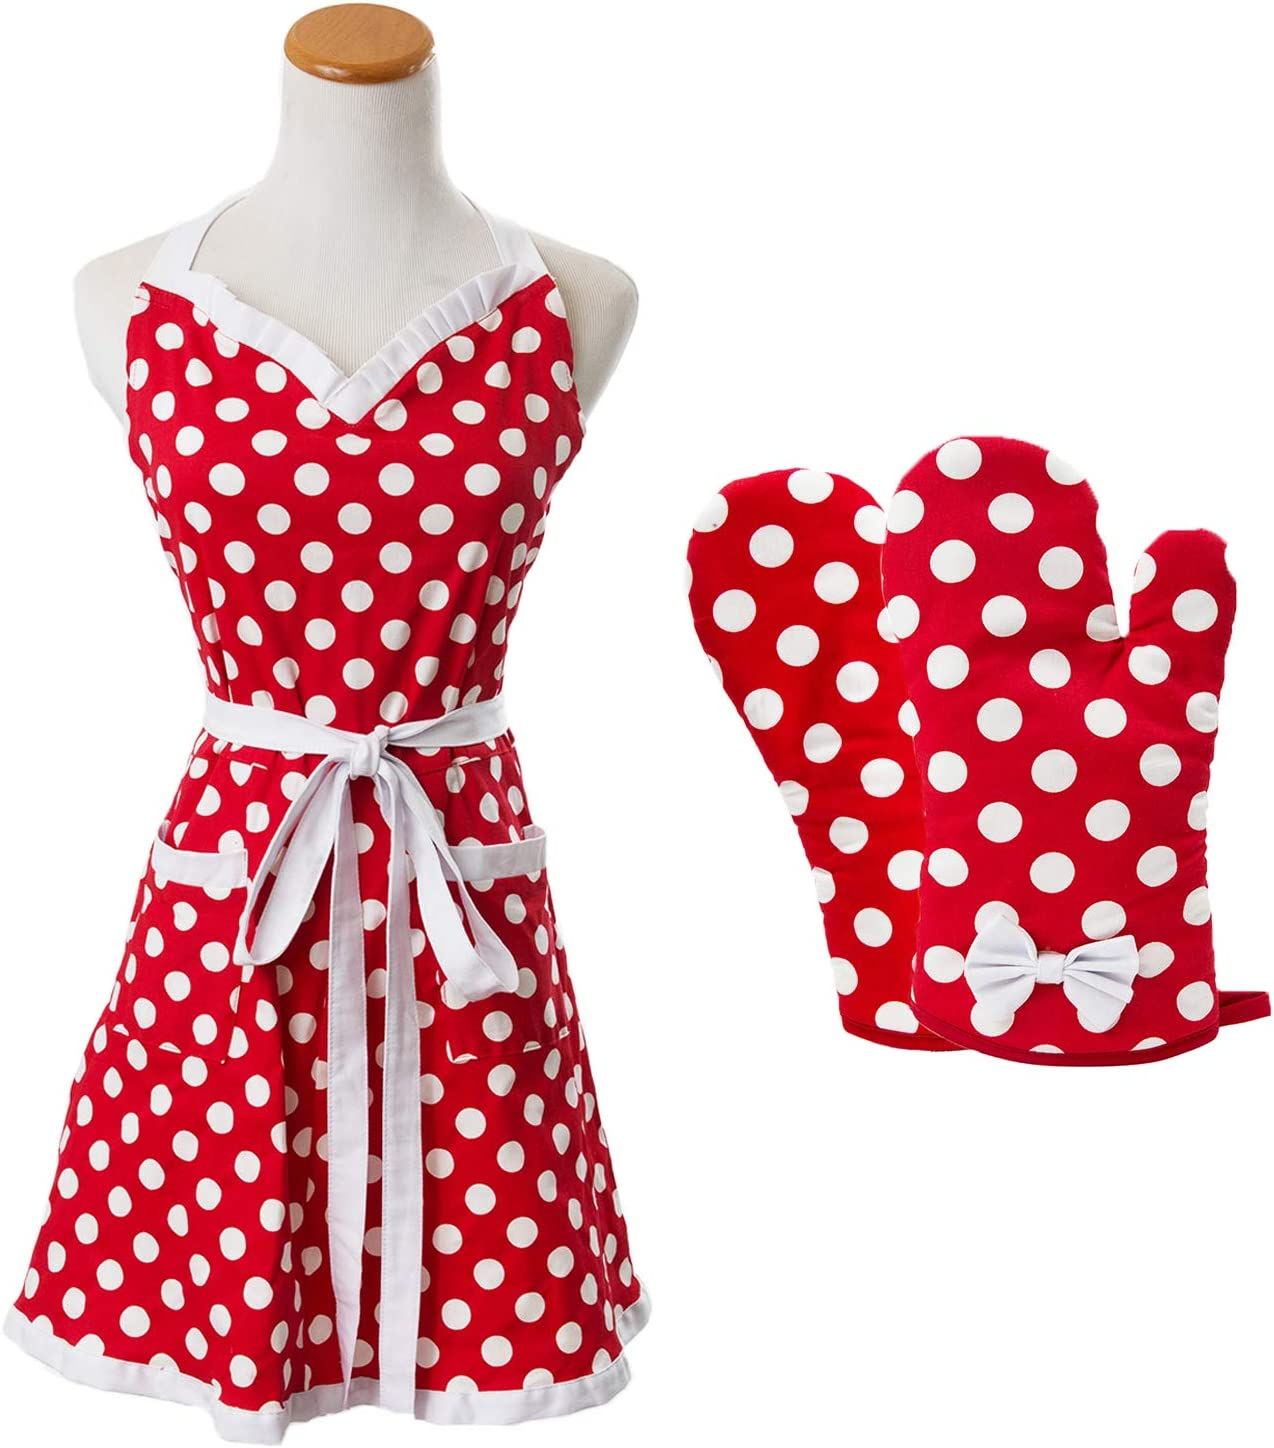 Houseables Polka Dot Apron, Red & White, Retro, Adjustable, One Size, w/Oven Mitts, Cotton, Kitchen Dress w/Pockets, Sleeveless, for Cooking, Baking, Party, Salon, Gift, Women, Ruffle Bib, Vintage